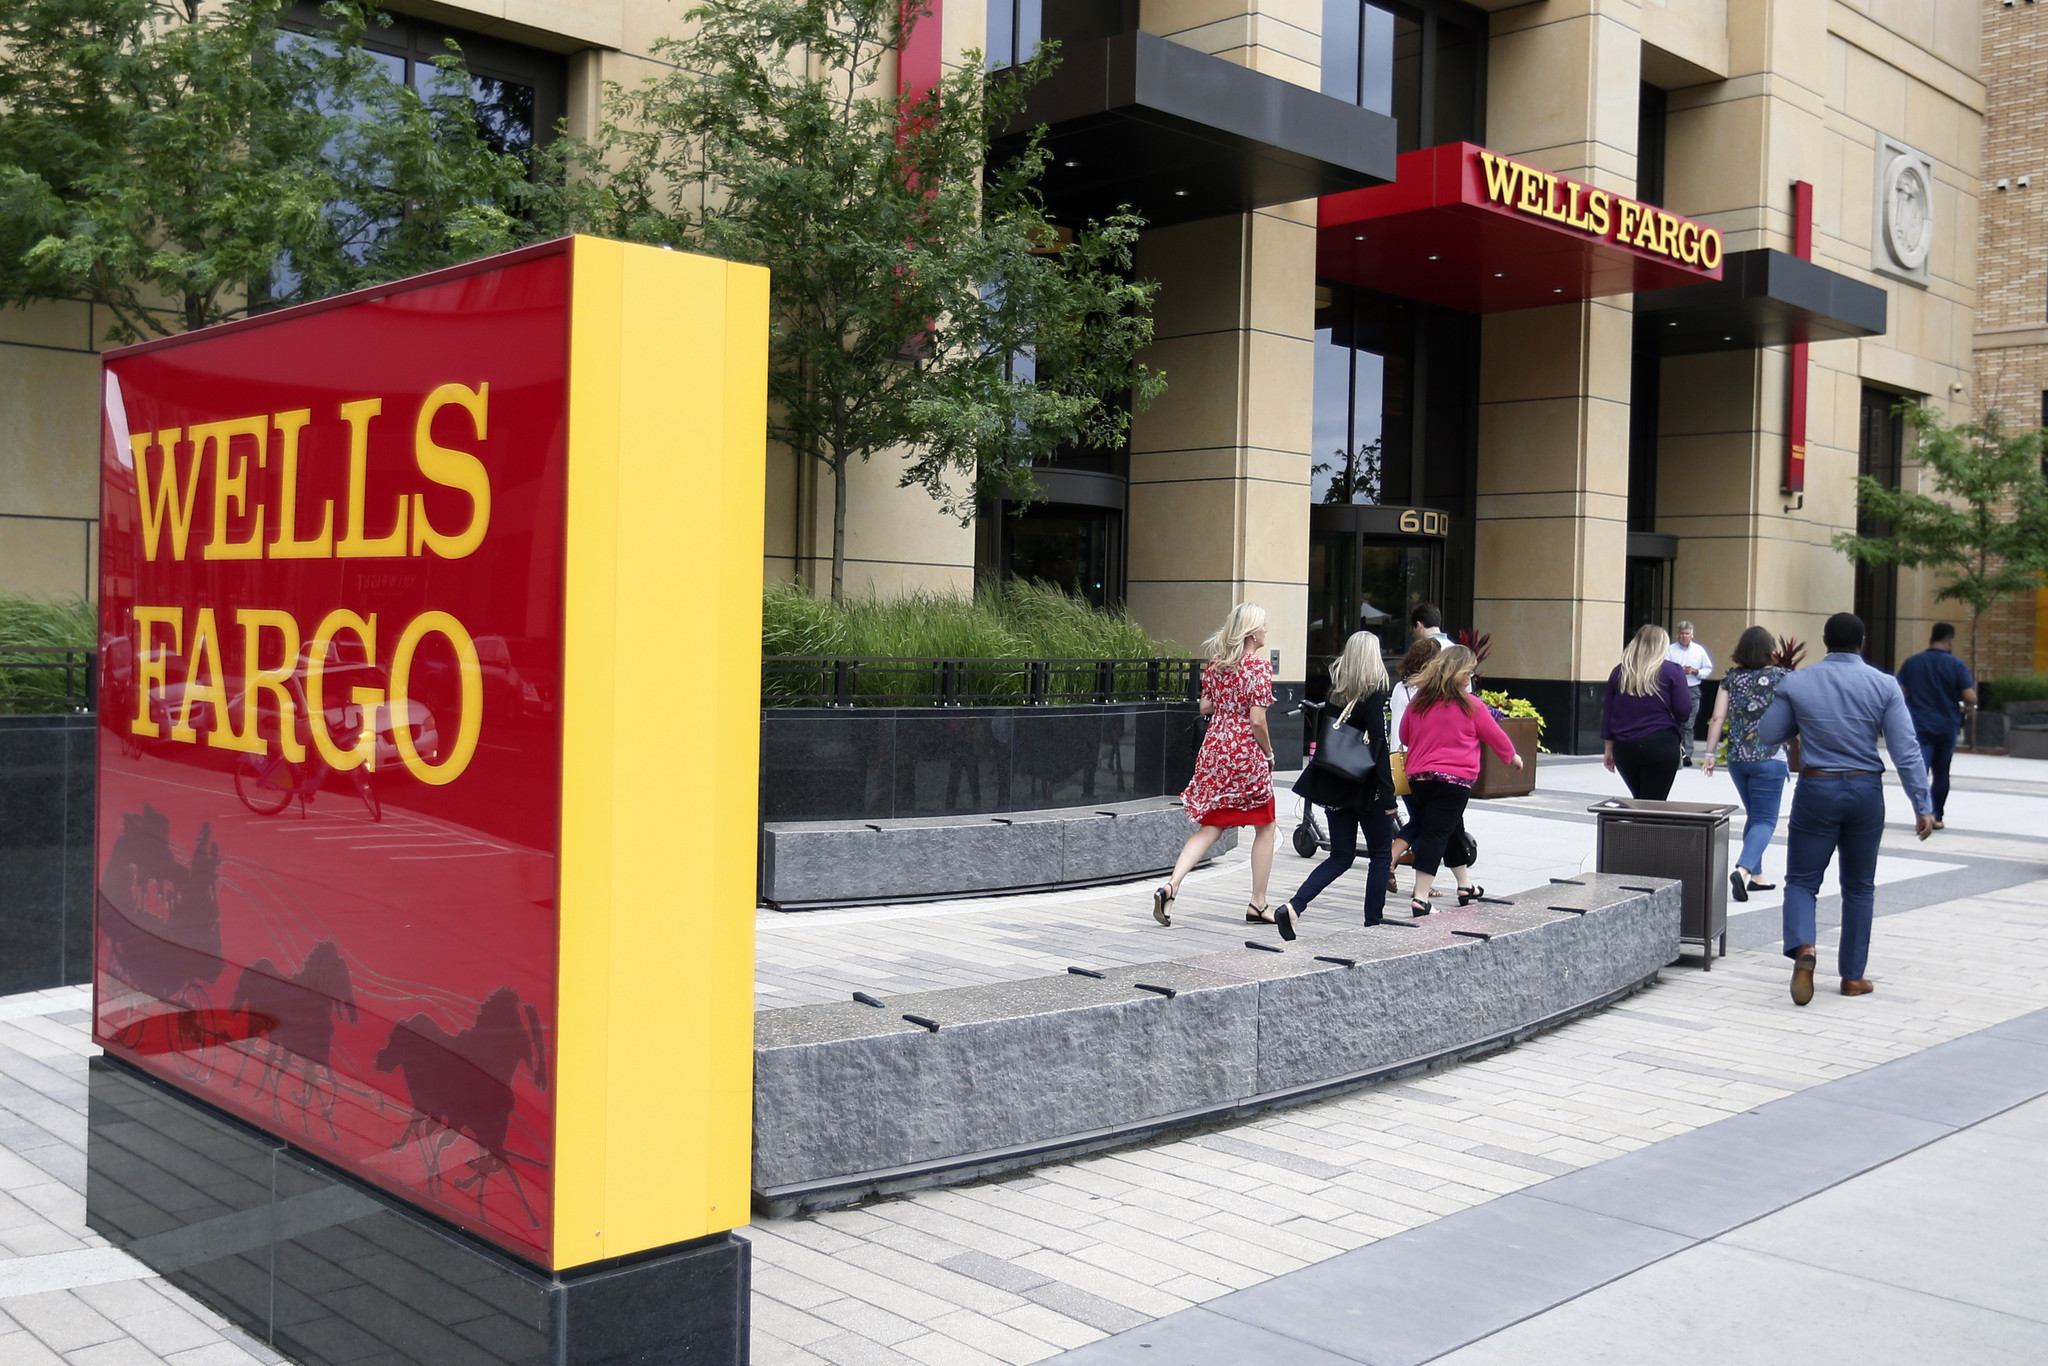 Wells Fargo joins growing list of businesses ending contributions to Florida's school voucher program over anti-LGBTQ policies